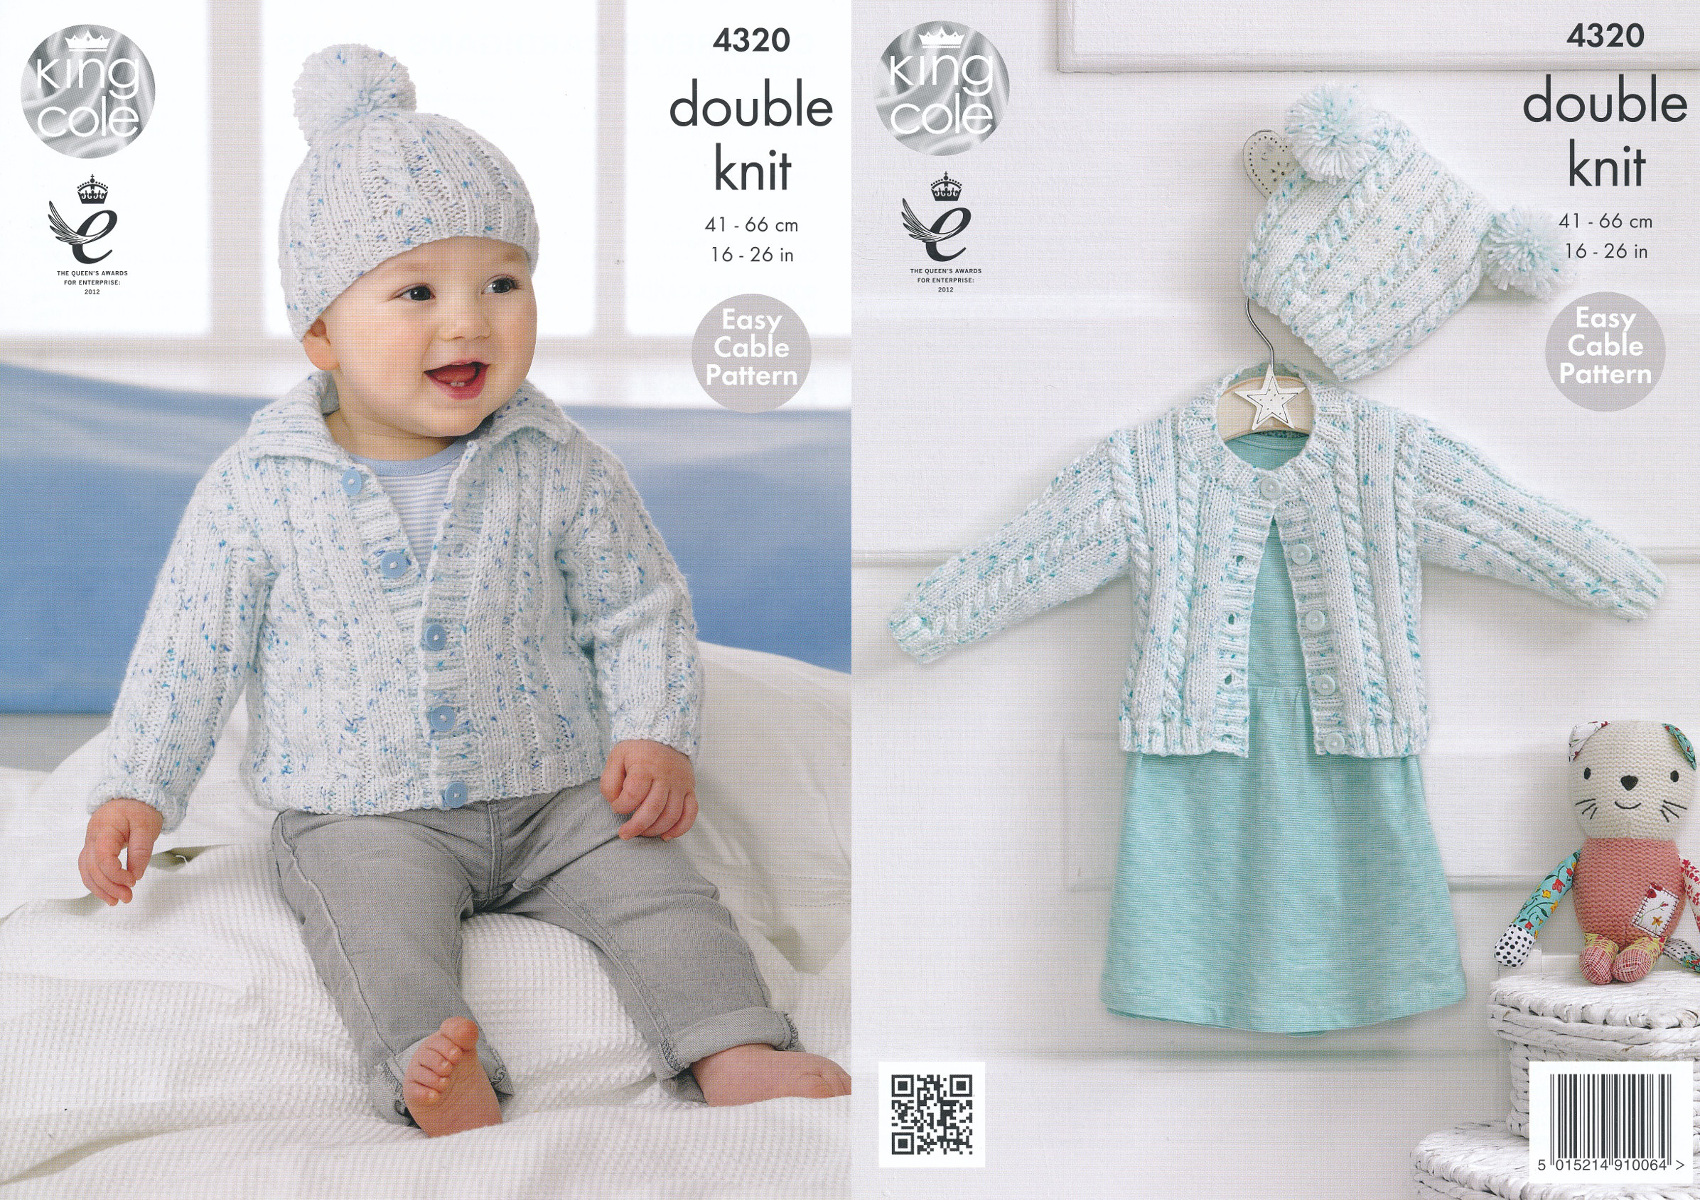 Smarty DK Knitting Pattern King Cole Childrens Cable Knit Cardigans & Hat...